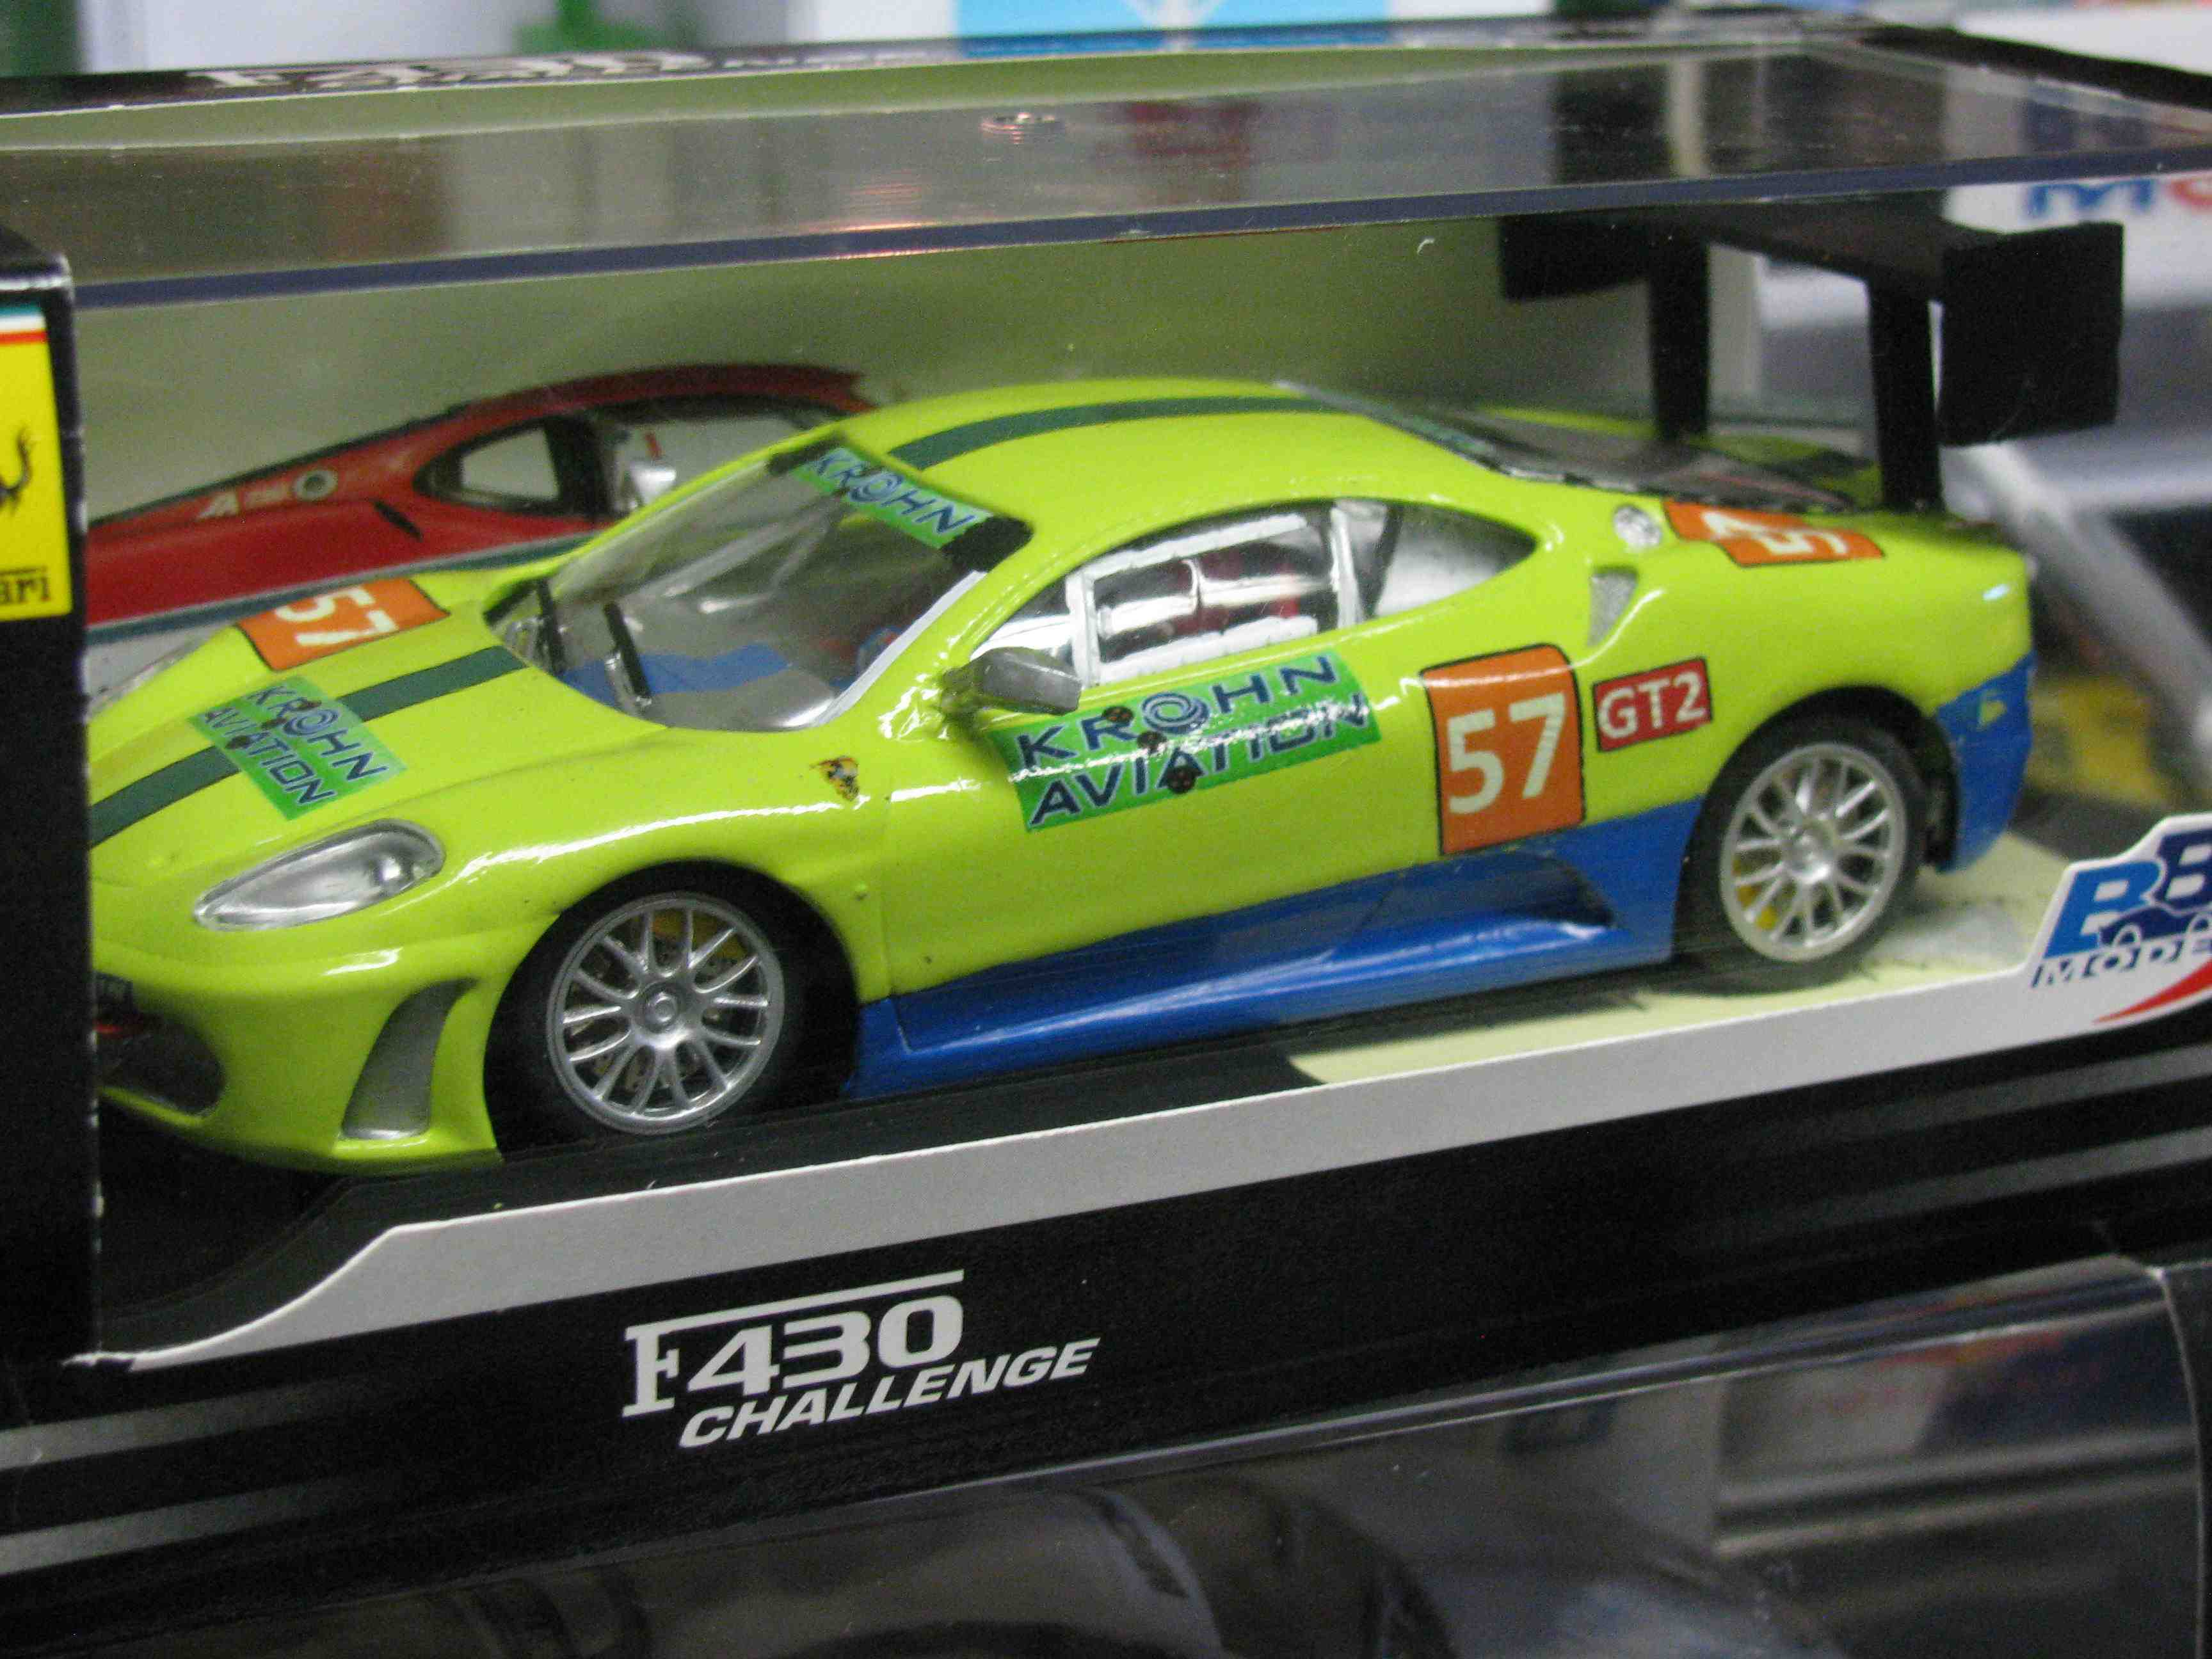 Ferrari F430 KROHN AVIATION Slot Car in Key Lime Green, Custom Decal Design with Custom Rear Spoiler – Car 57